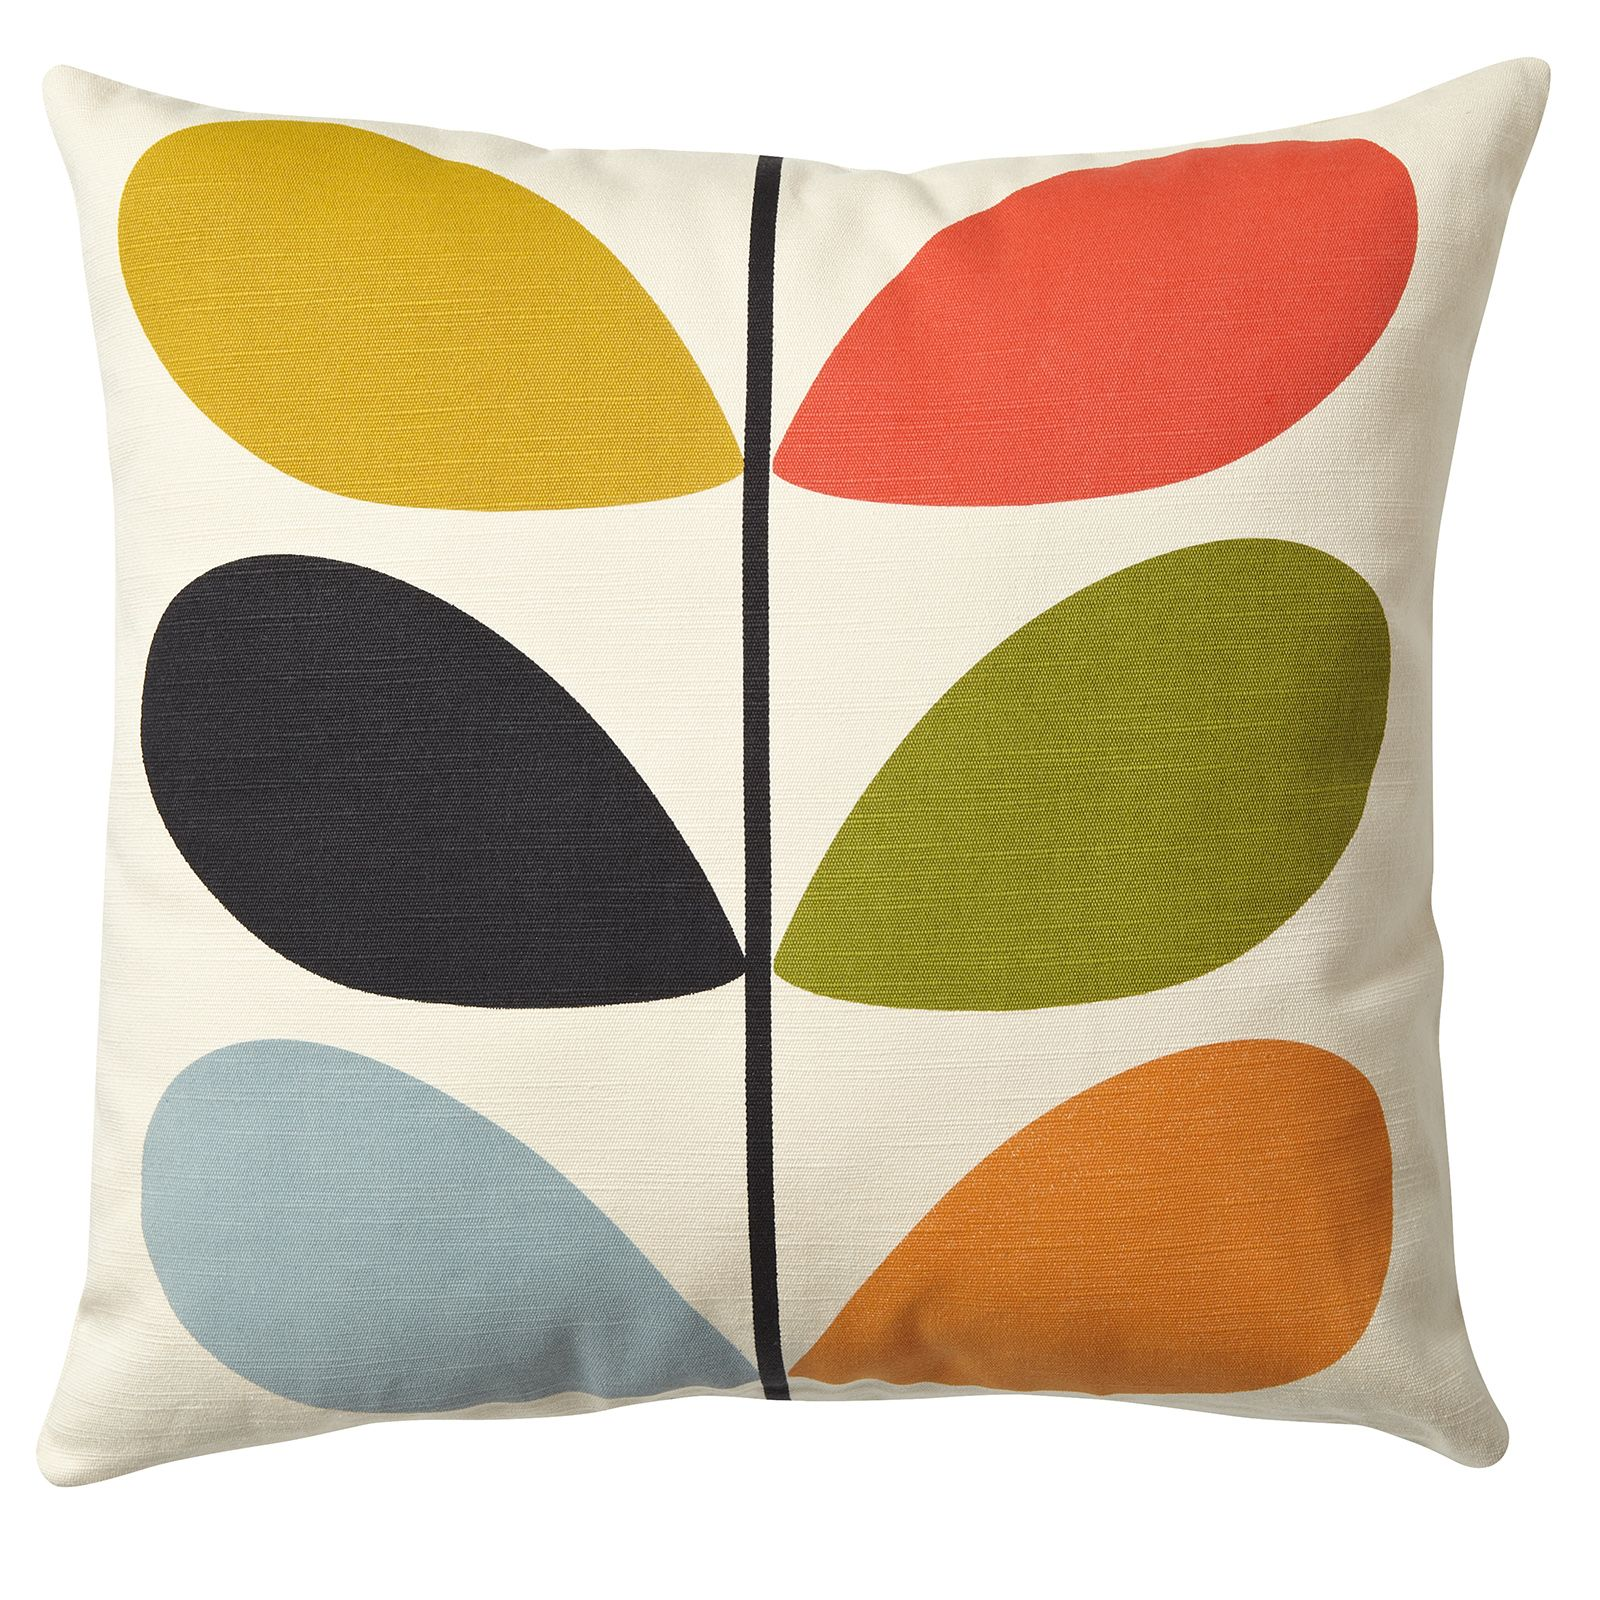 Orla kiely u iconic bags clothing accessories and home